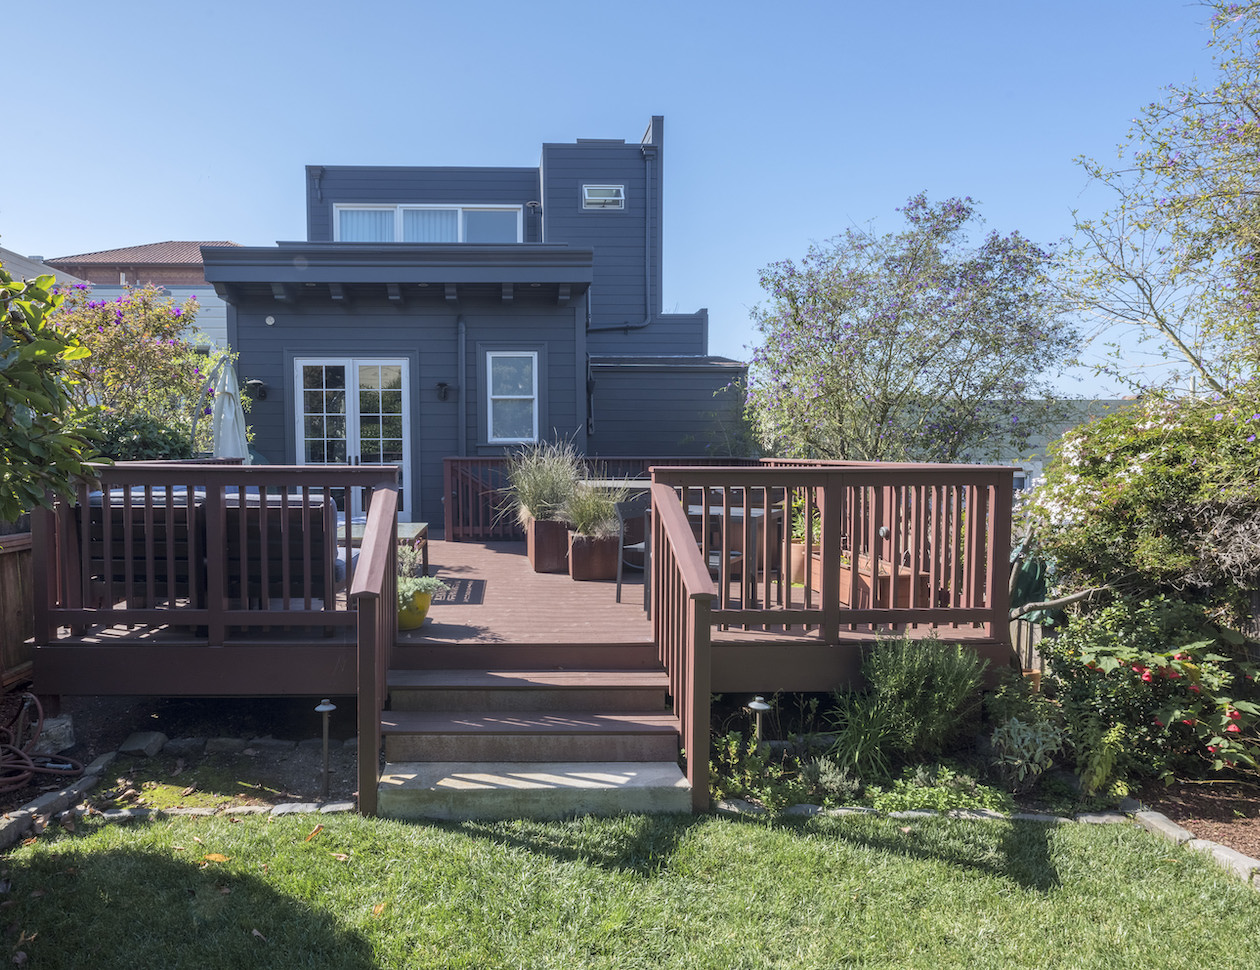 home exterior with deck and new remodeled addition.jpg